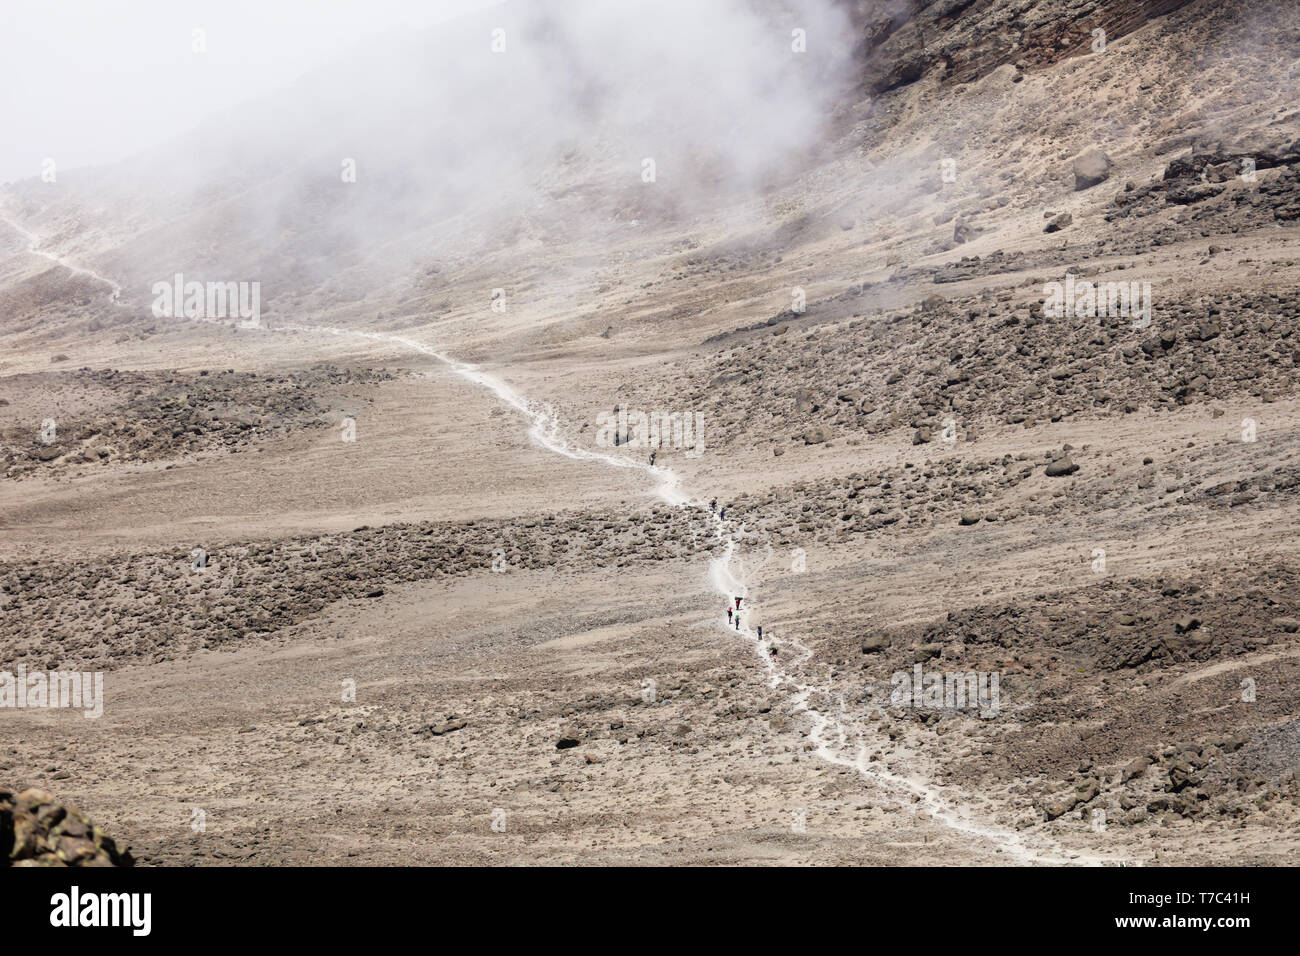 Thin road in a mountains leads to the top. Sand and stones on the ground, dry land. Clouds up on the sky. Travelling in a desert of Africa. Sunny hot Stock Photo